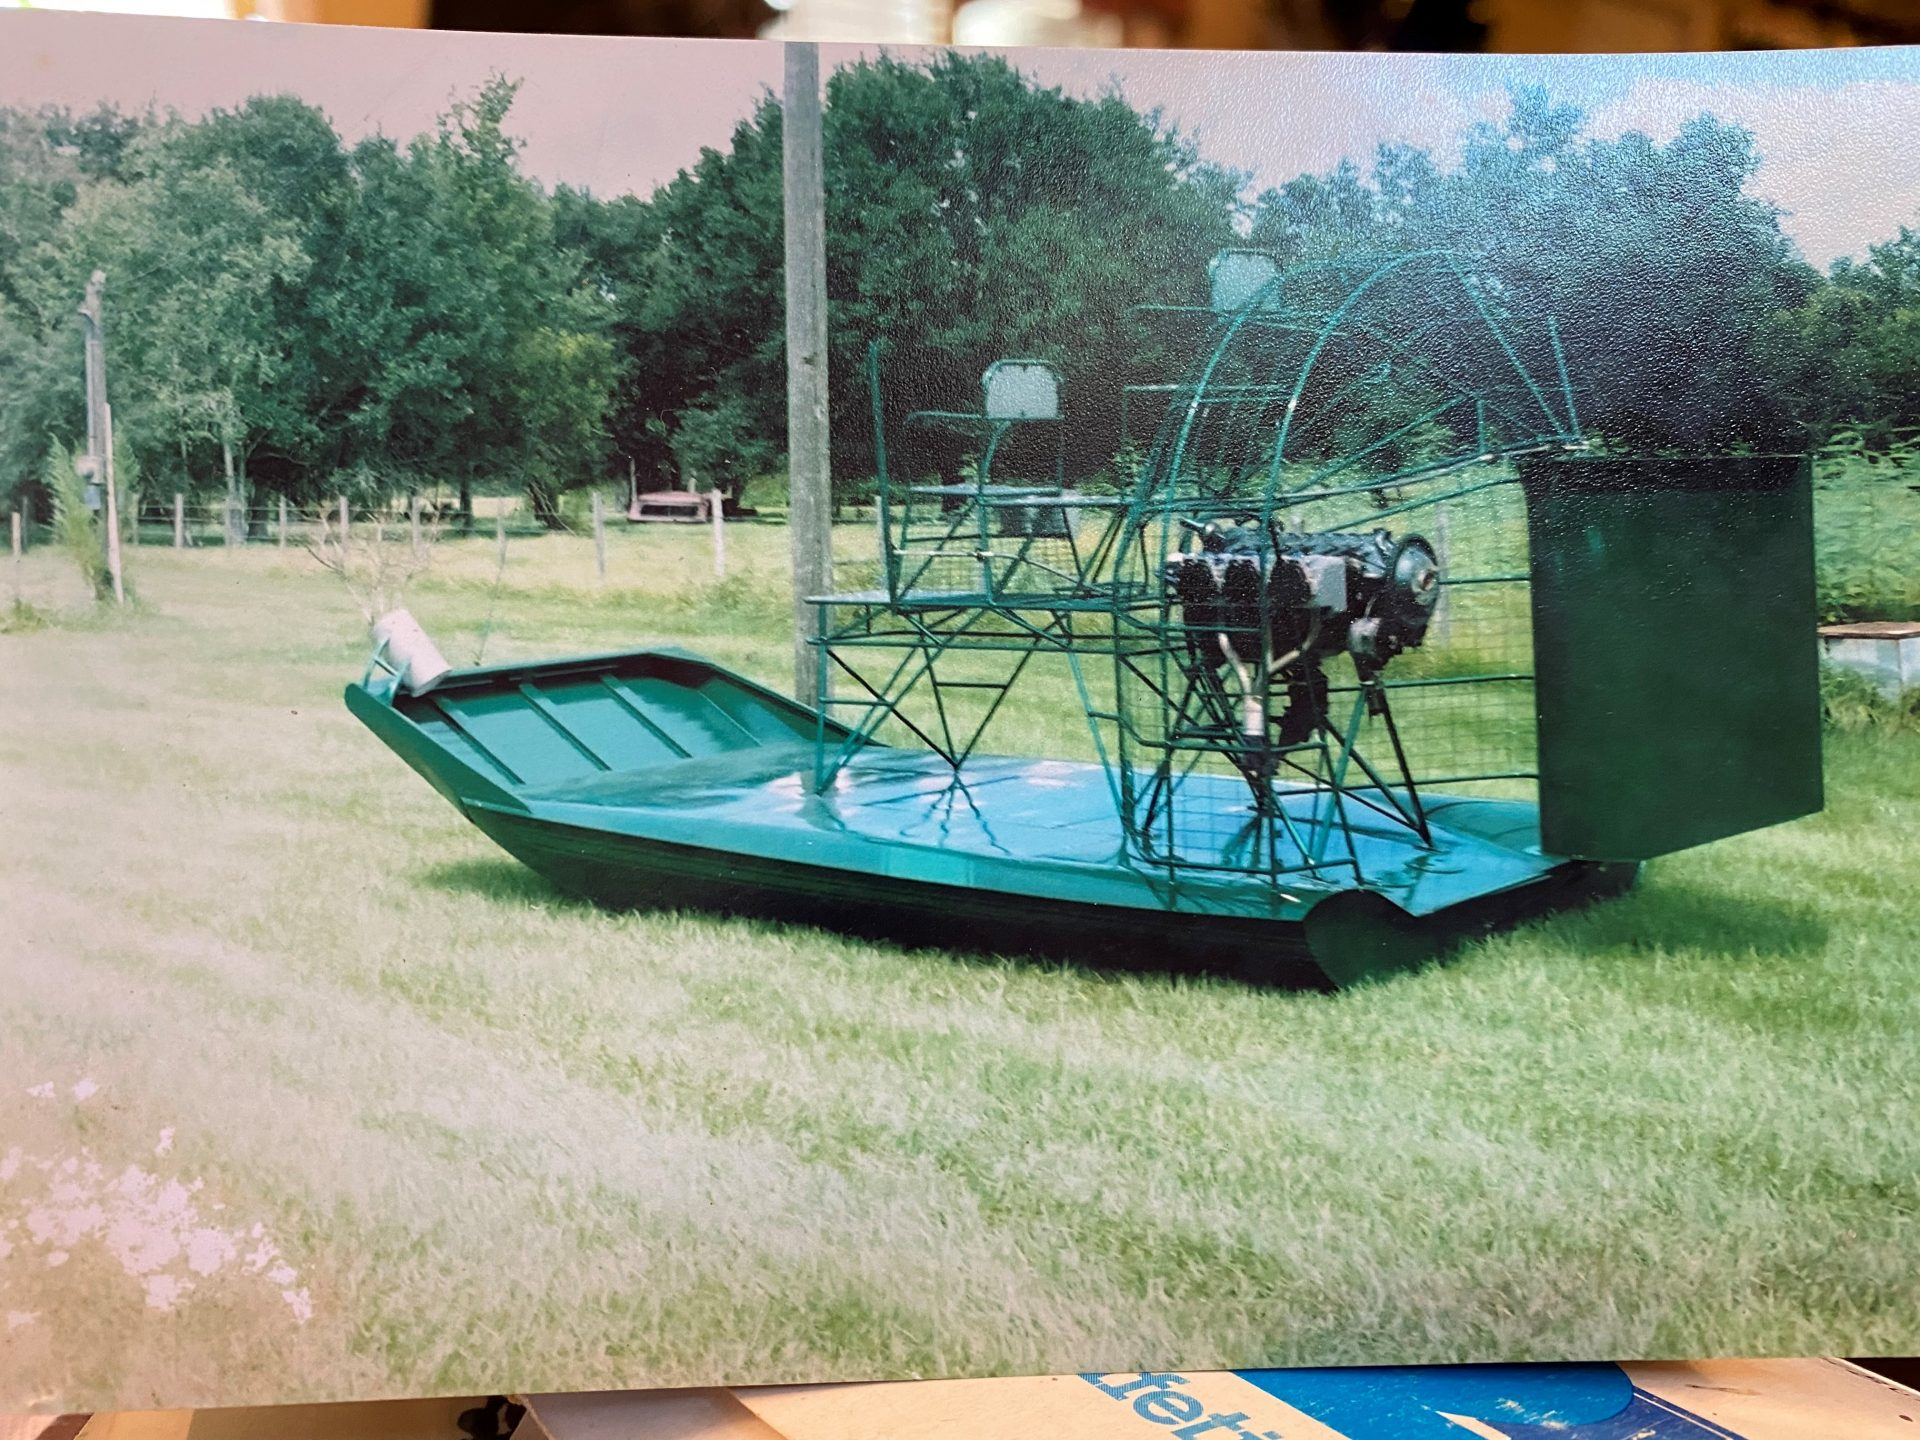 green airboat at the Okeechobee shop?